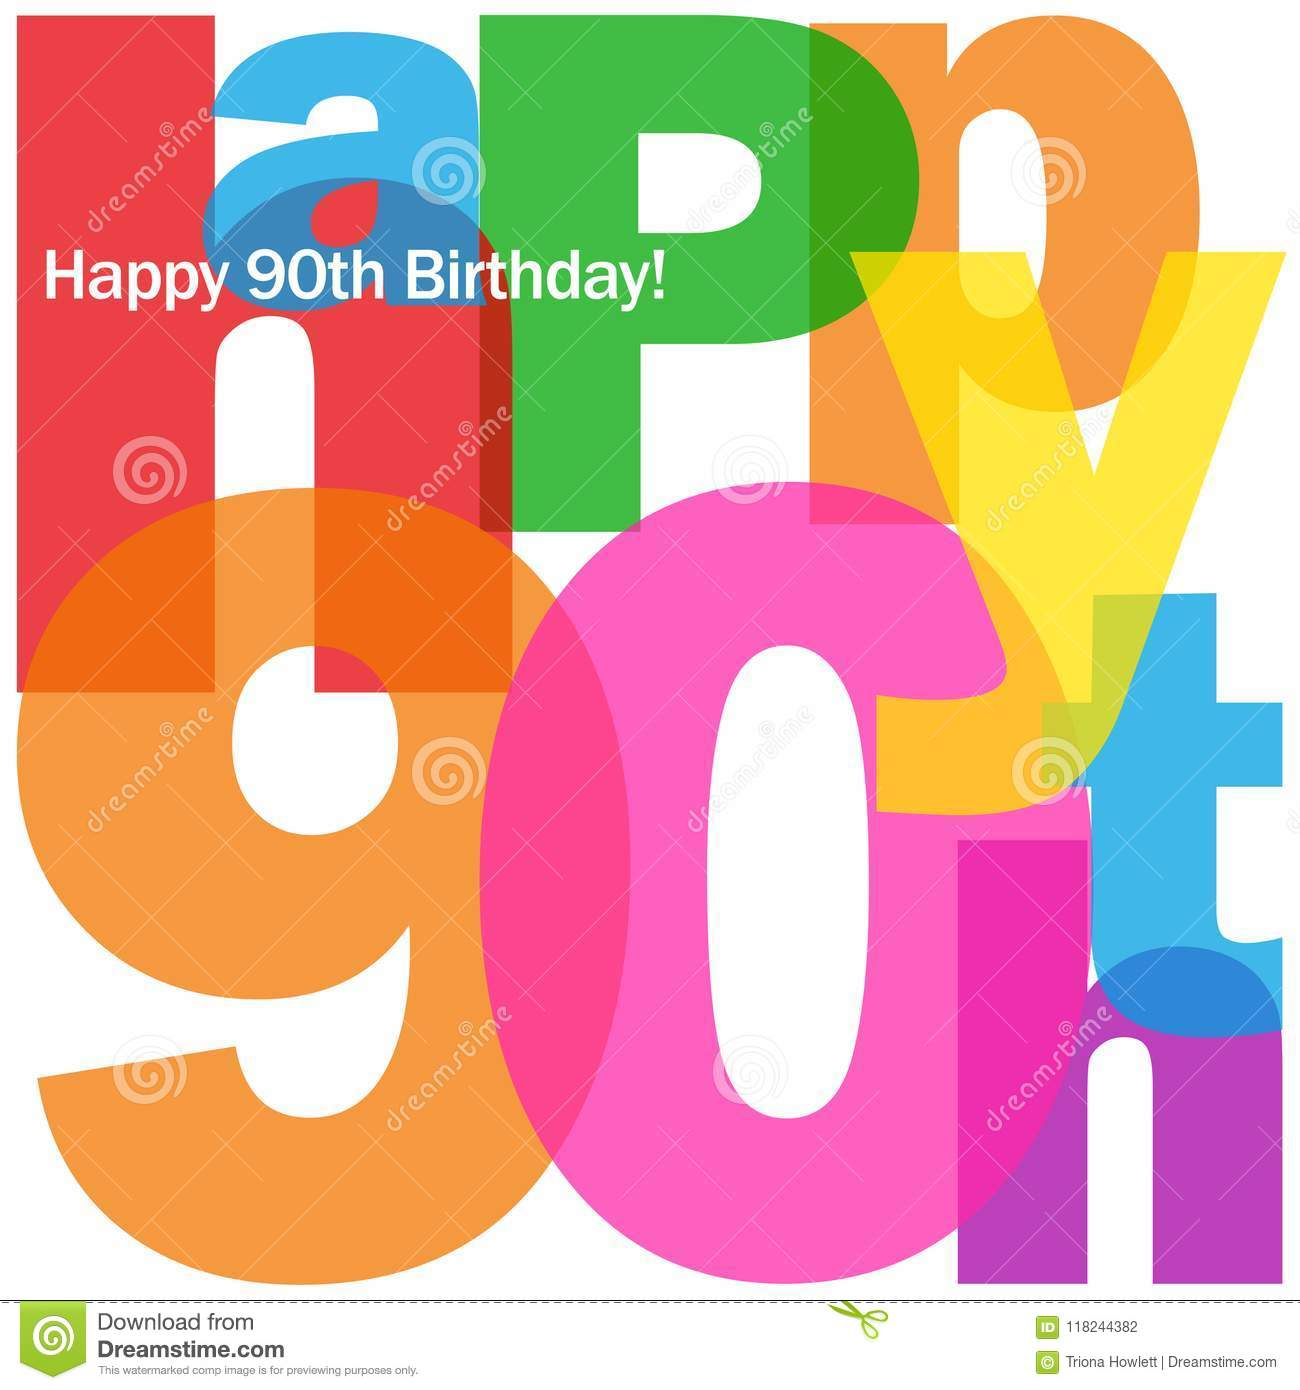 HAPPY 90th BIRTHDAY Colorful Letters Collage Card